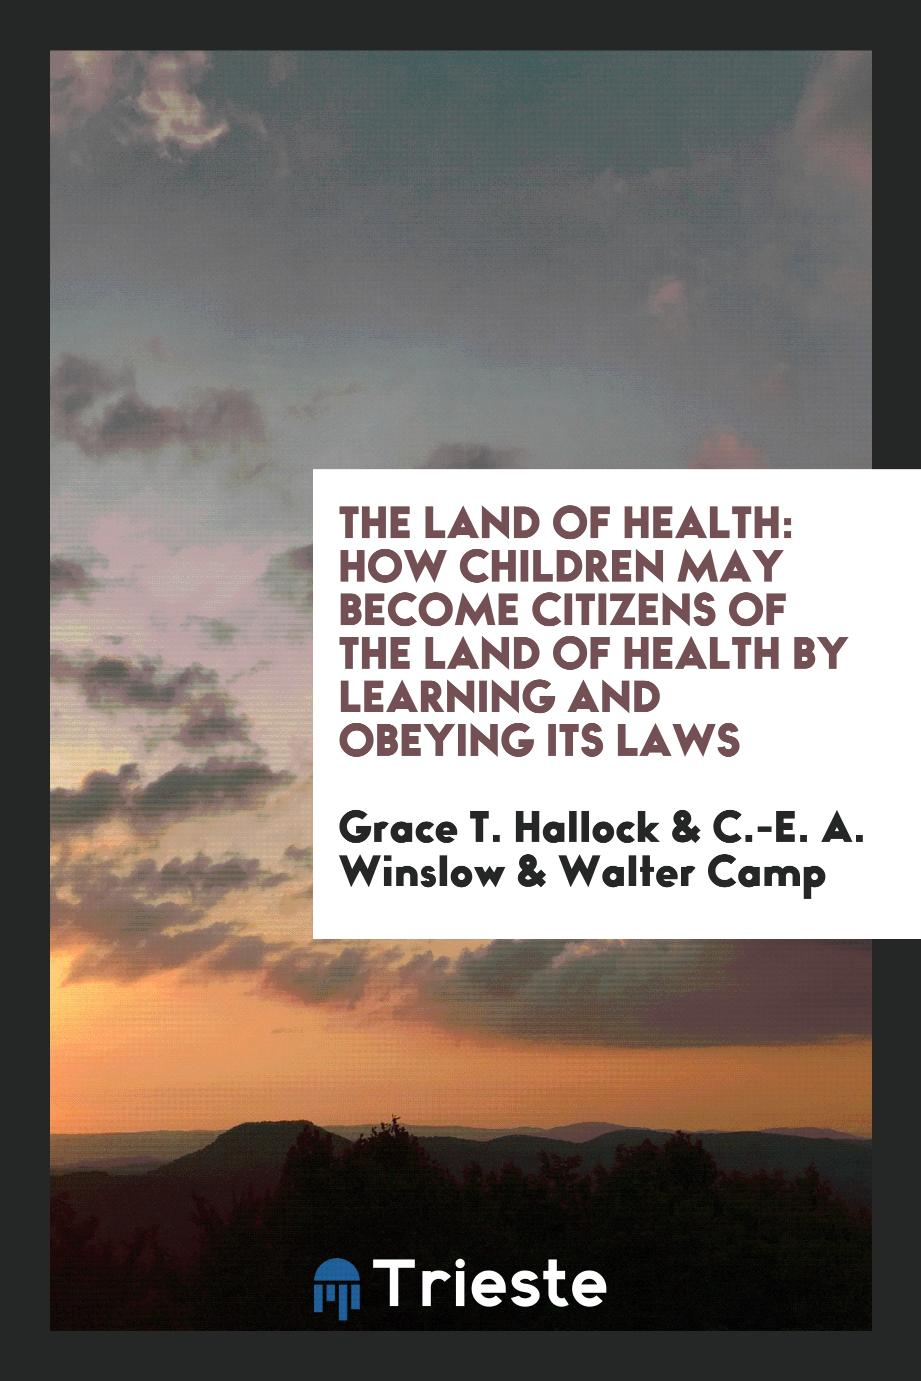 The Land of Health: How Children May Become Citizens of the Land of Health by Learning and Obeying Its Laws